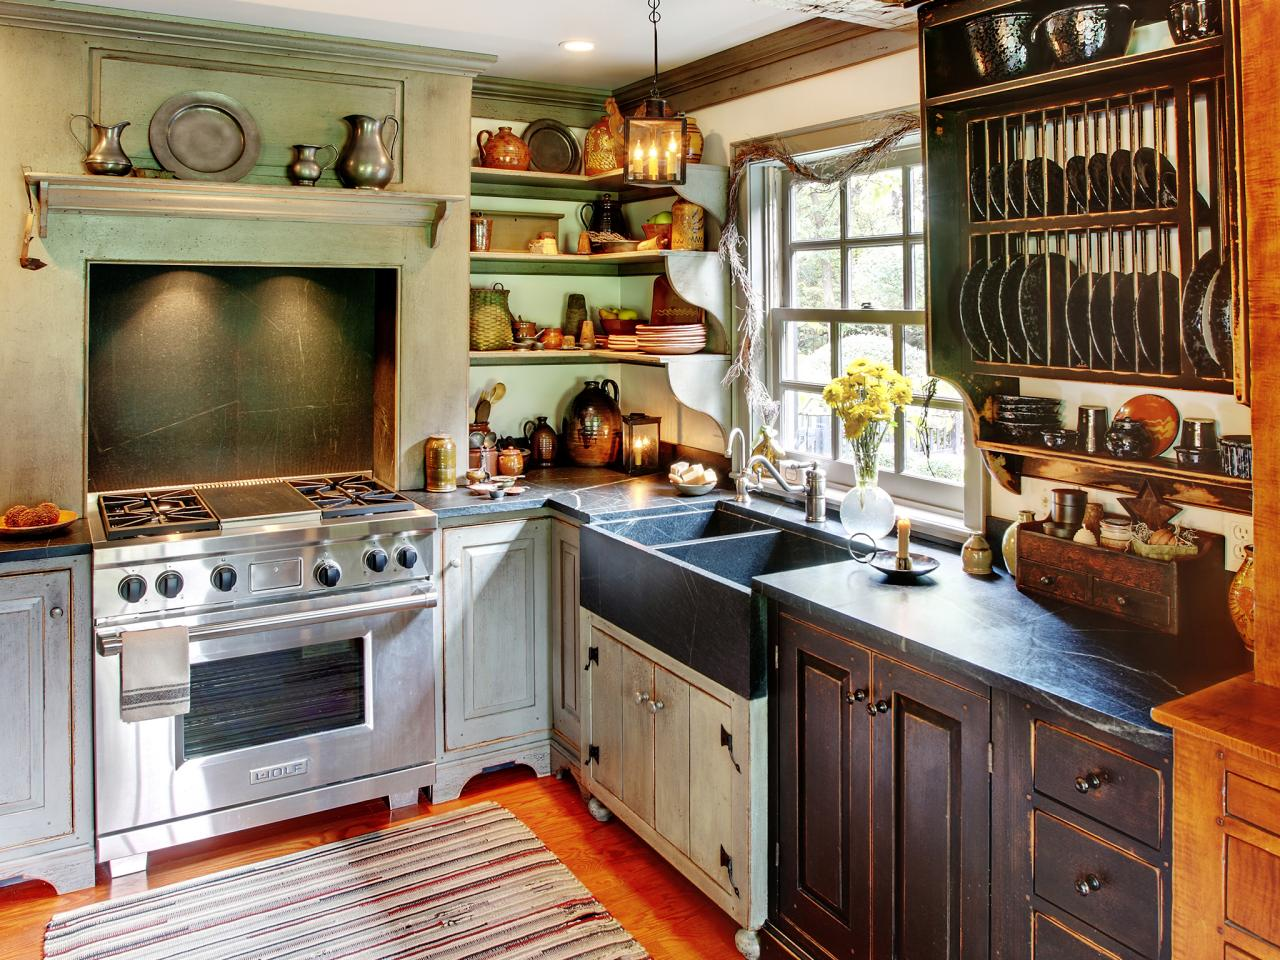 kitchen cabinet design ideas: pictures, options, tips & ideas | hgtv